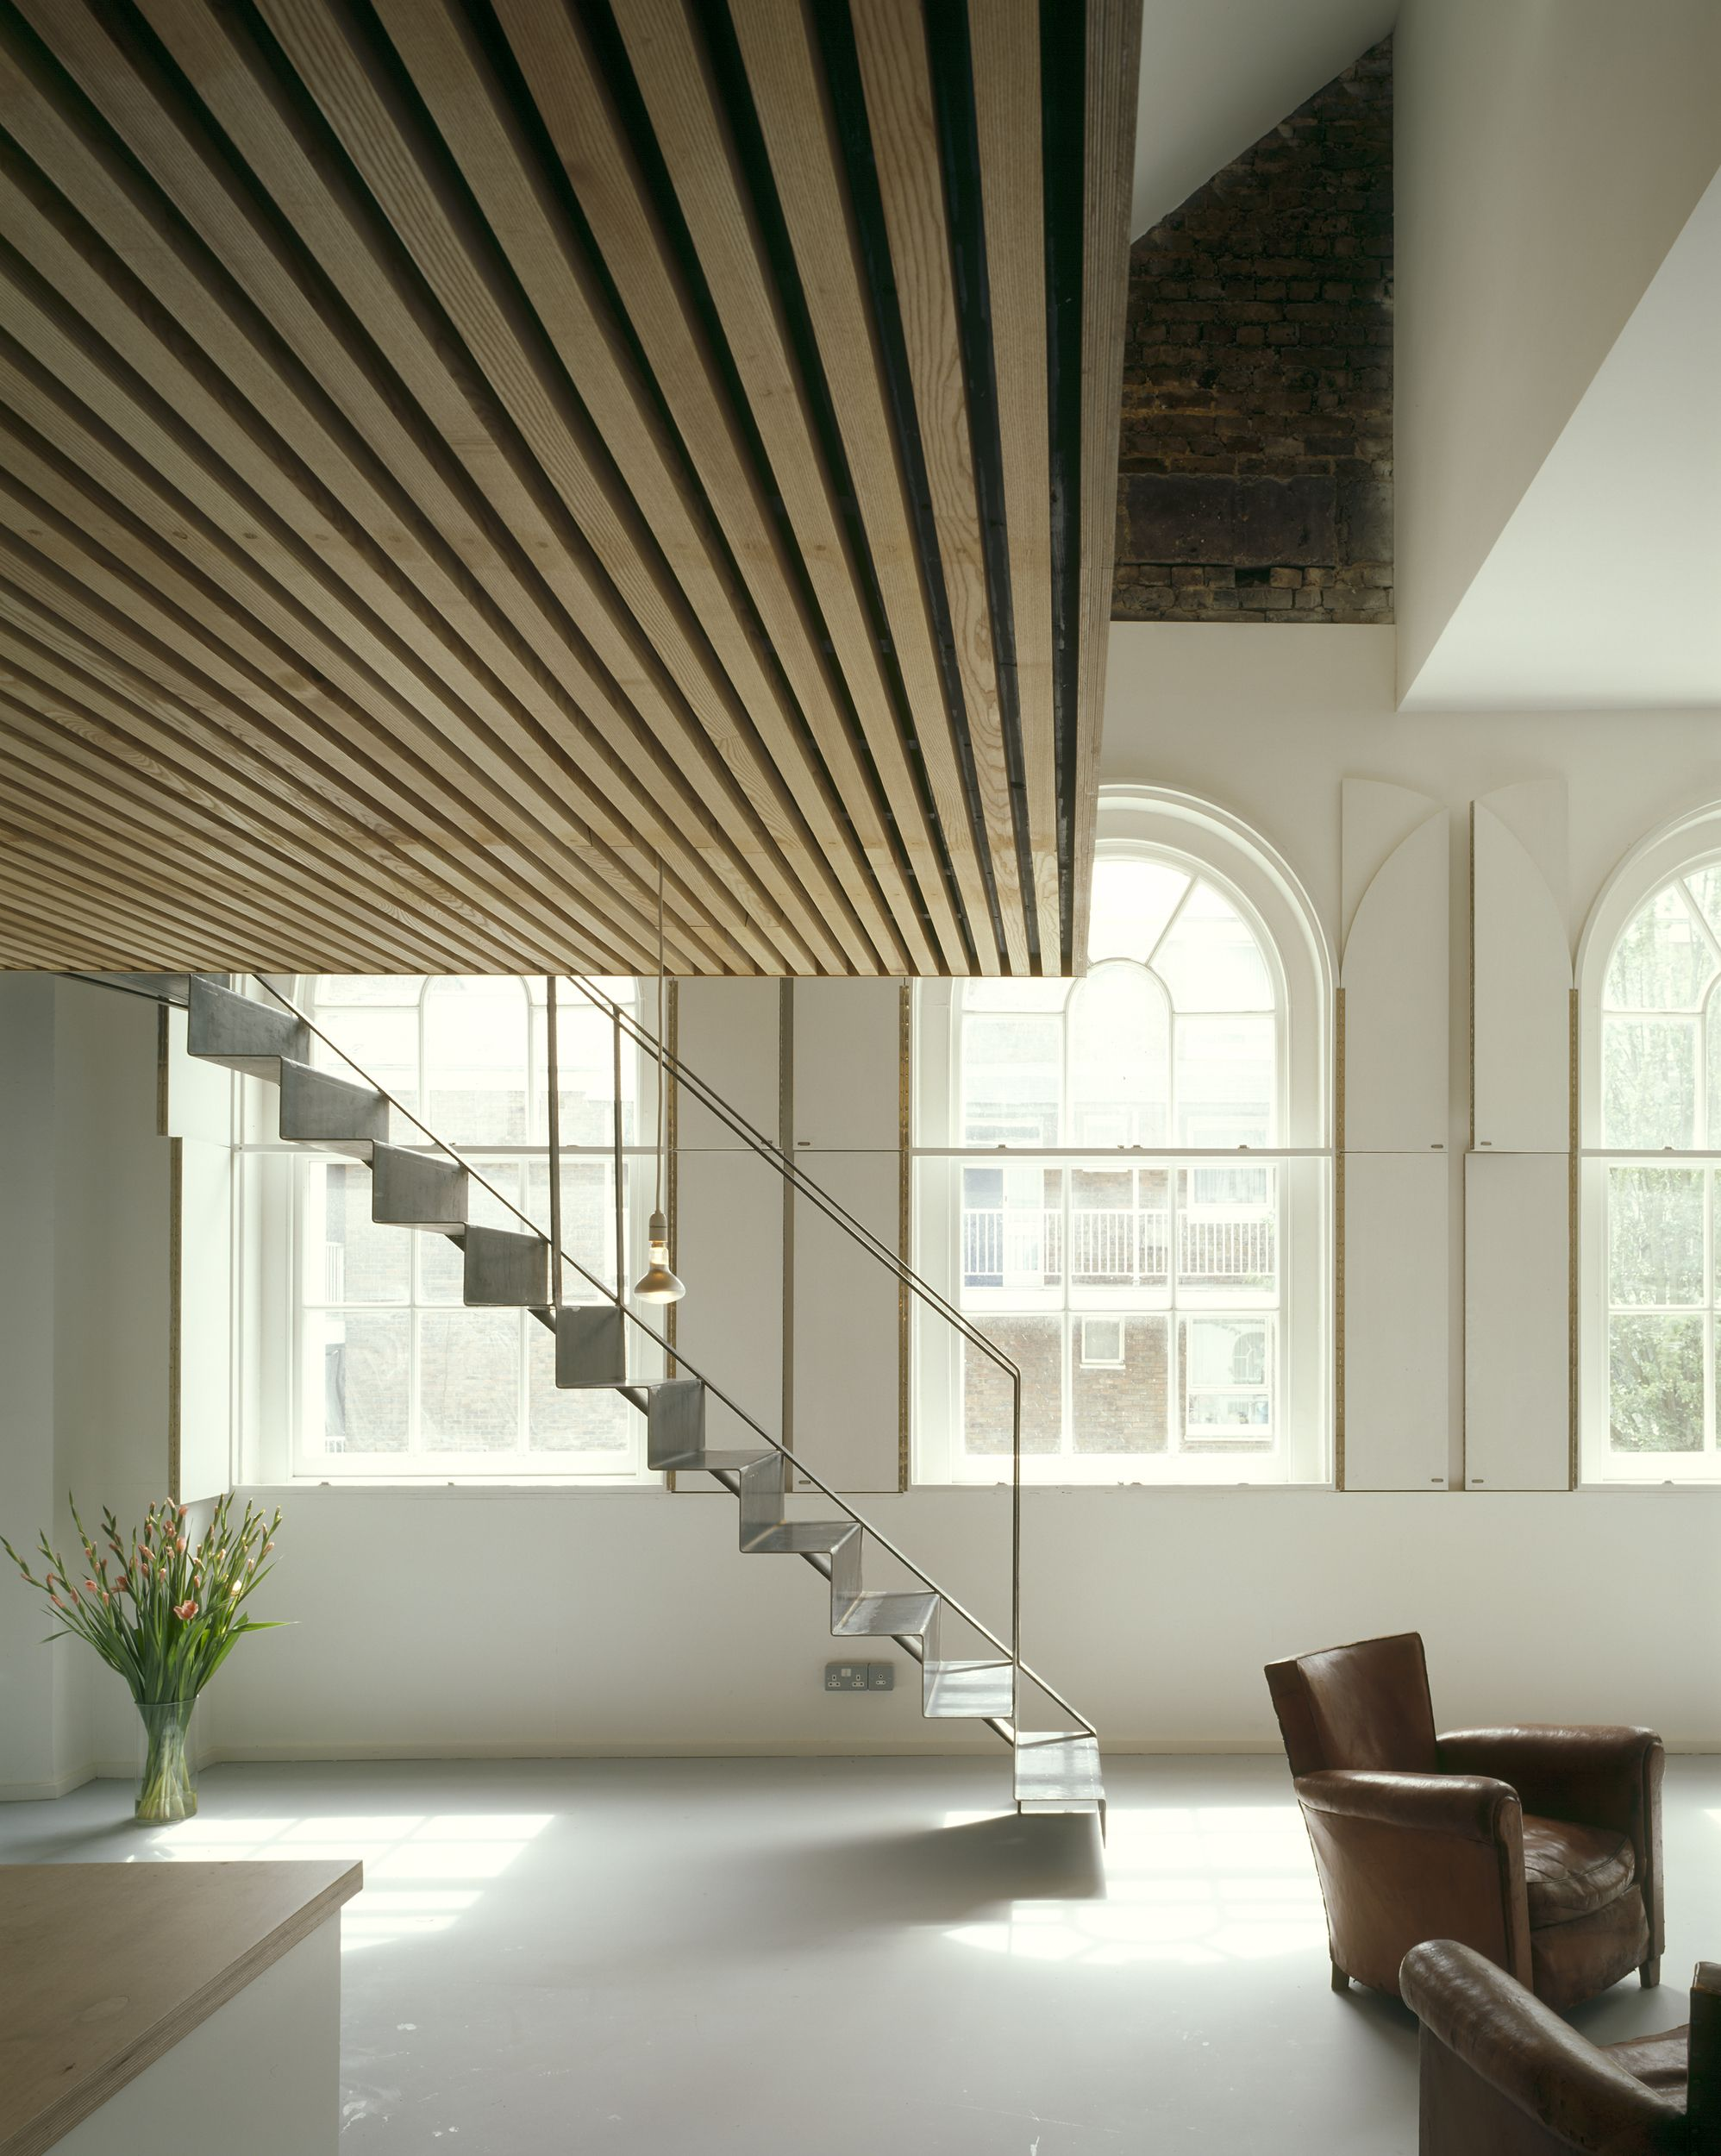 The Orthogonal Untreated Steel Staircase And Timber Mezzanine Provide A